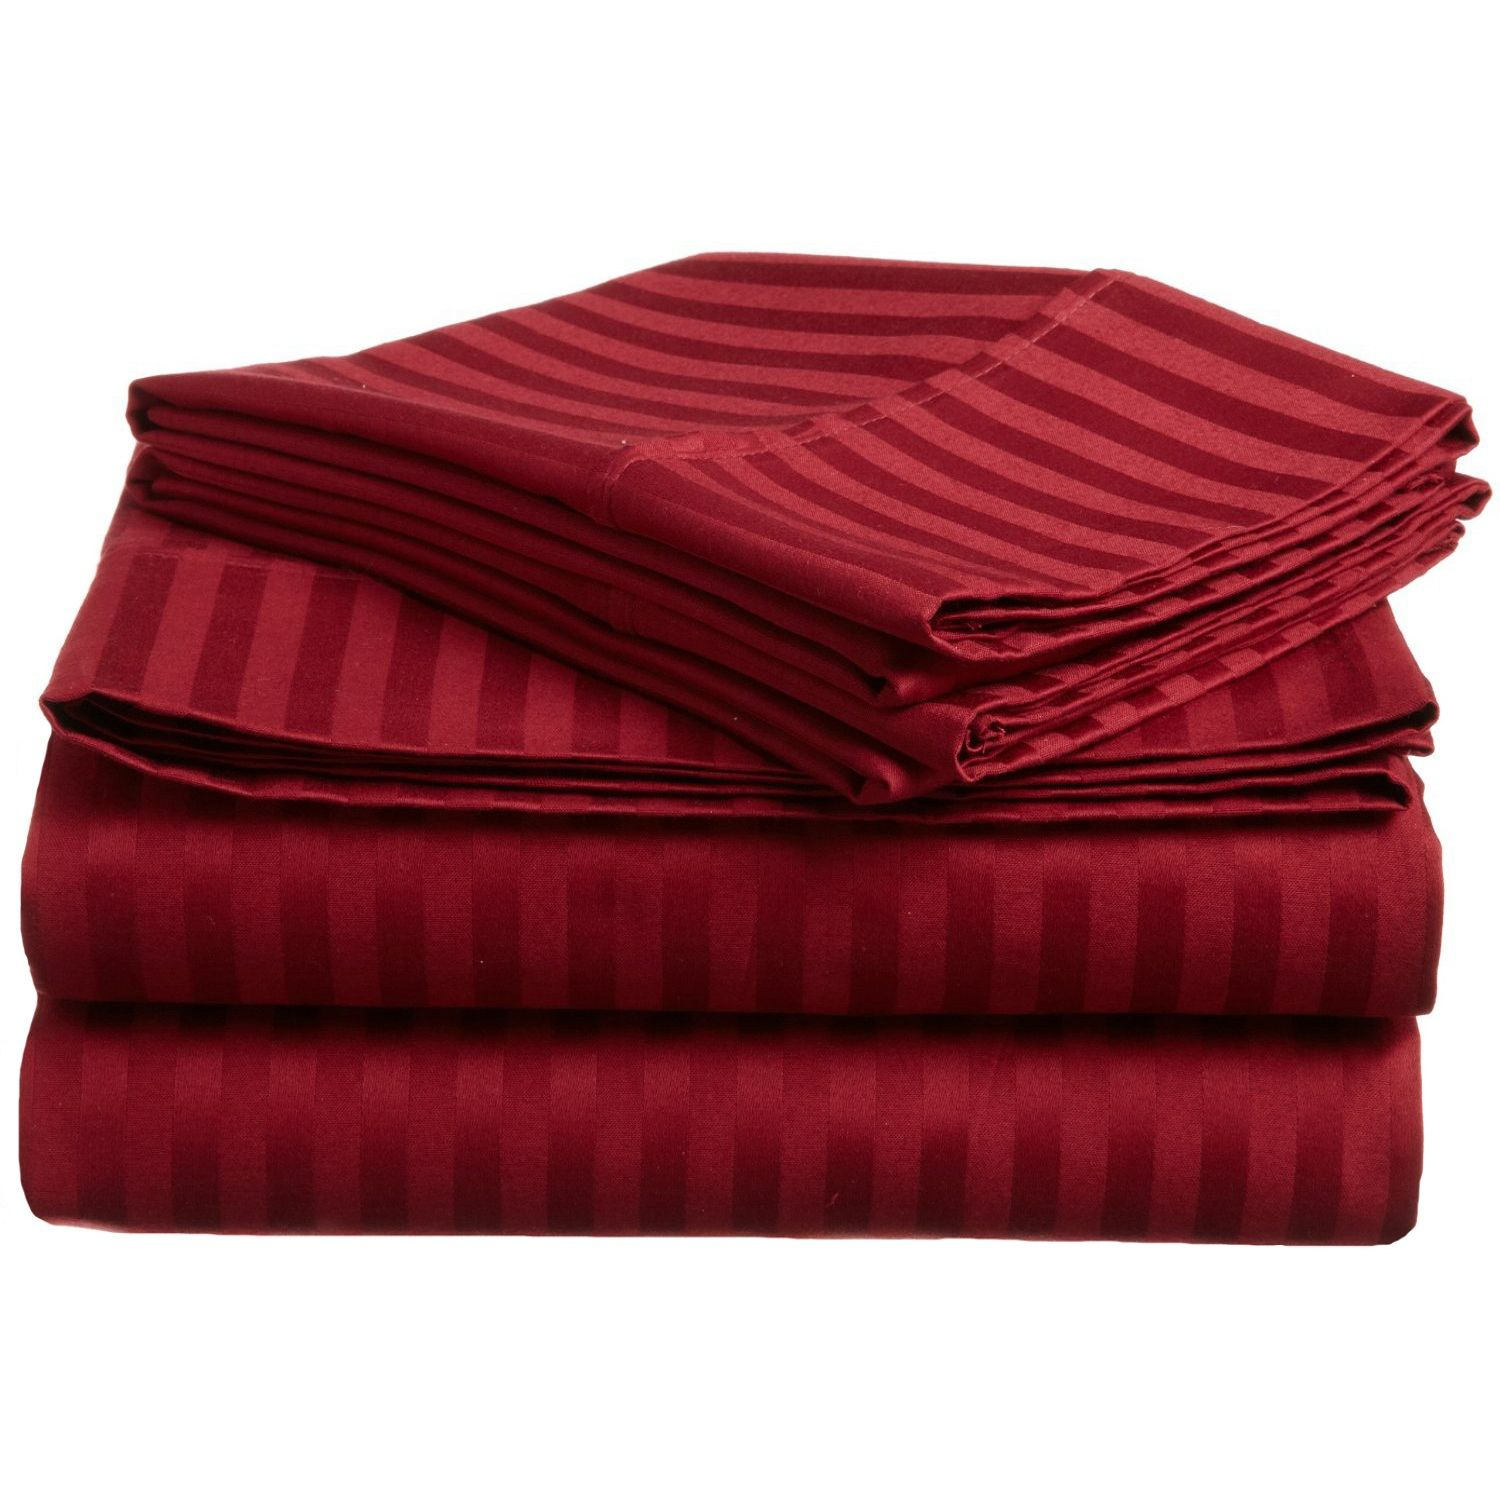 300 tc cal king sheet set egyptian cotton stripe burgundy for Highest thread count egyptian cotton sheets